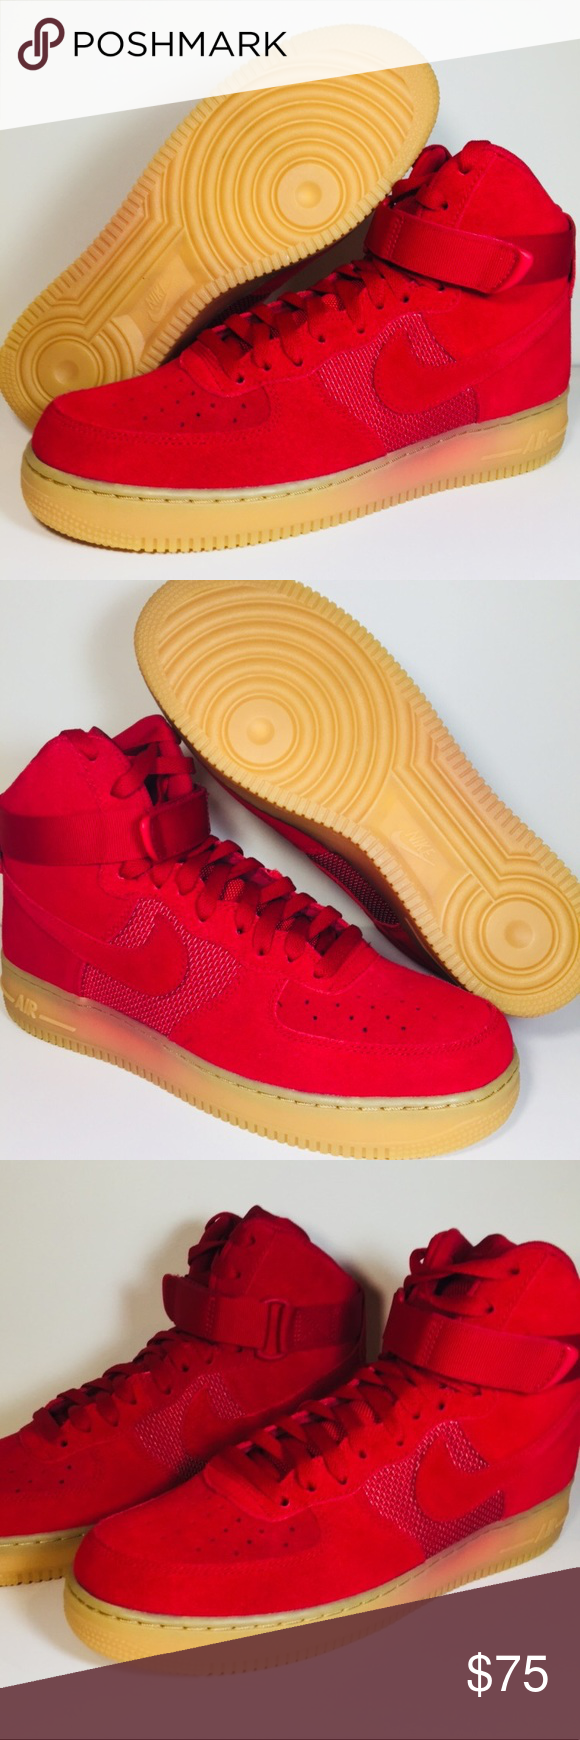 2128198a7e028 ... coupon code for nike air force 1 one high lv8 gym force rød gum textile  nike